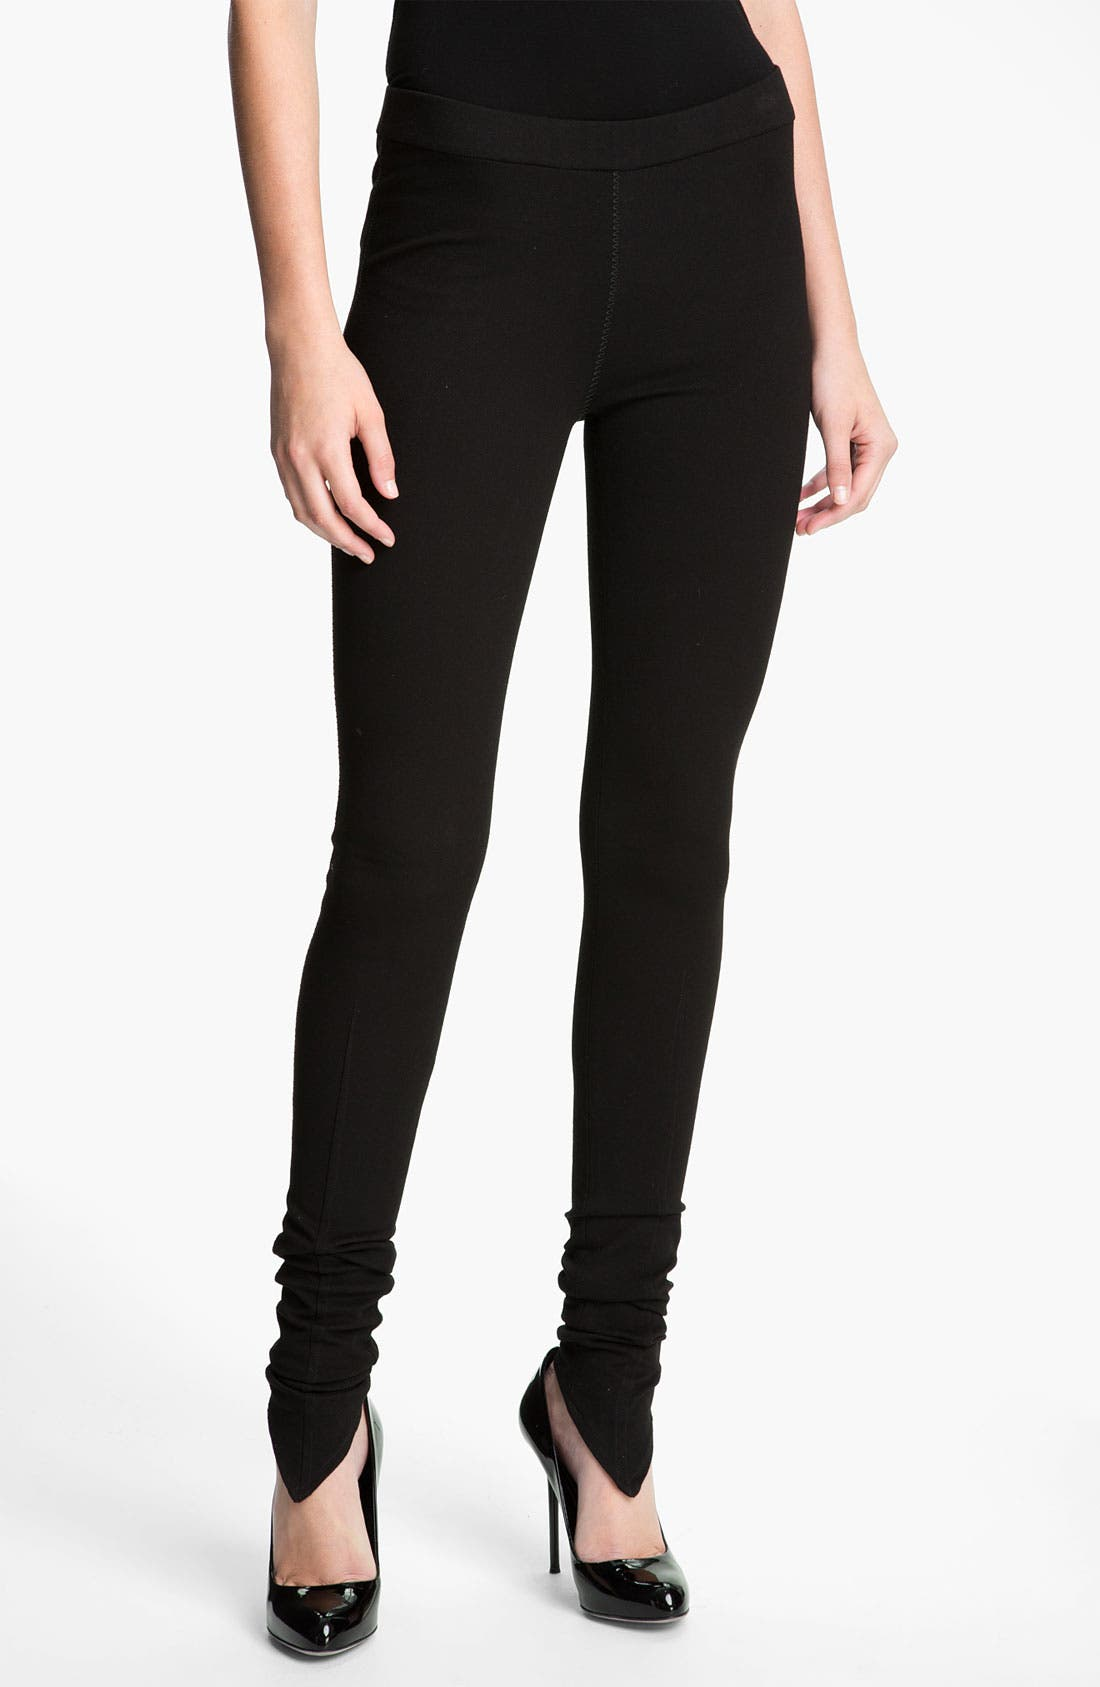 Main Image - Kelly Wearstler Micro Stretch Knit Pants